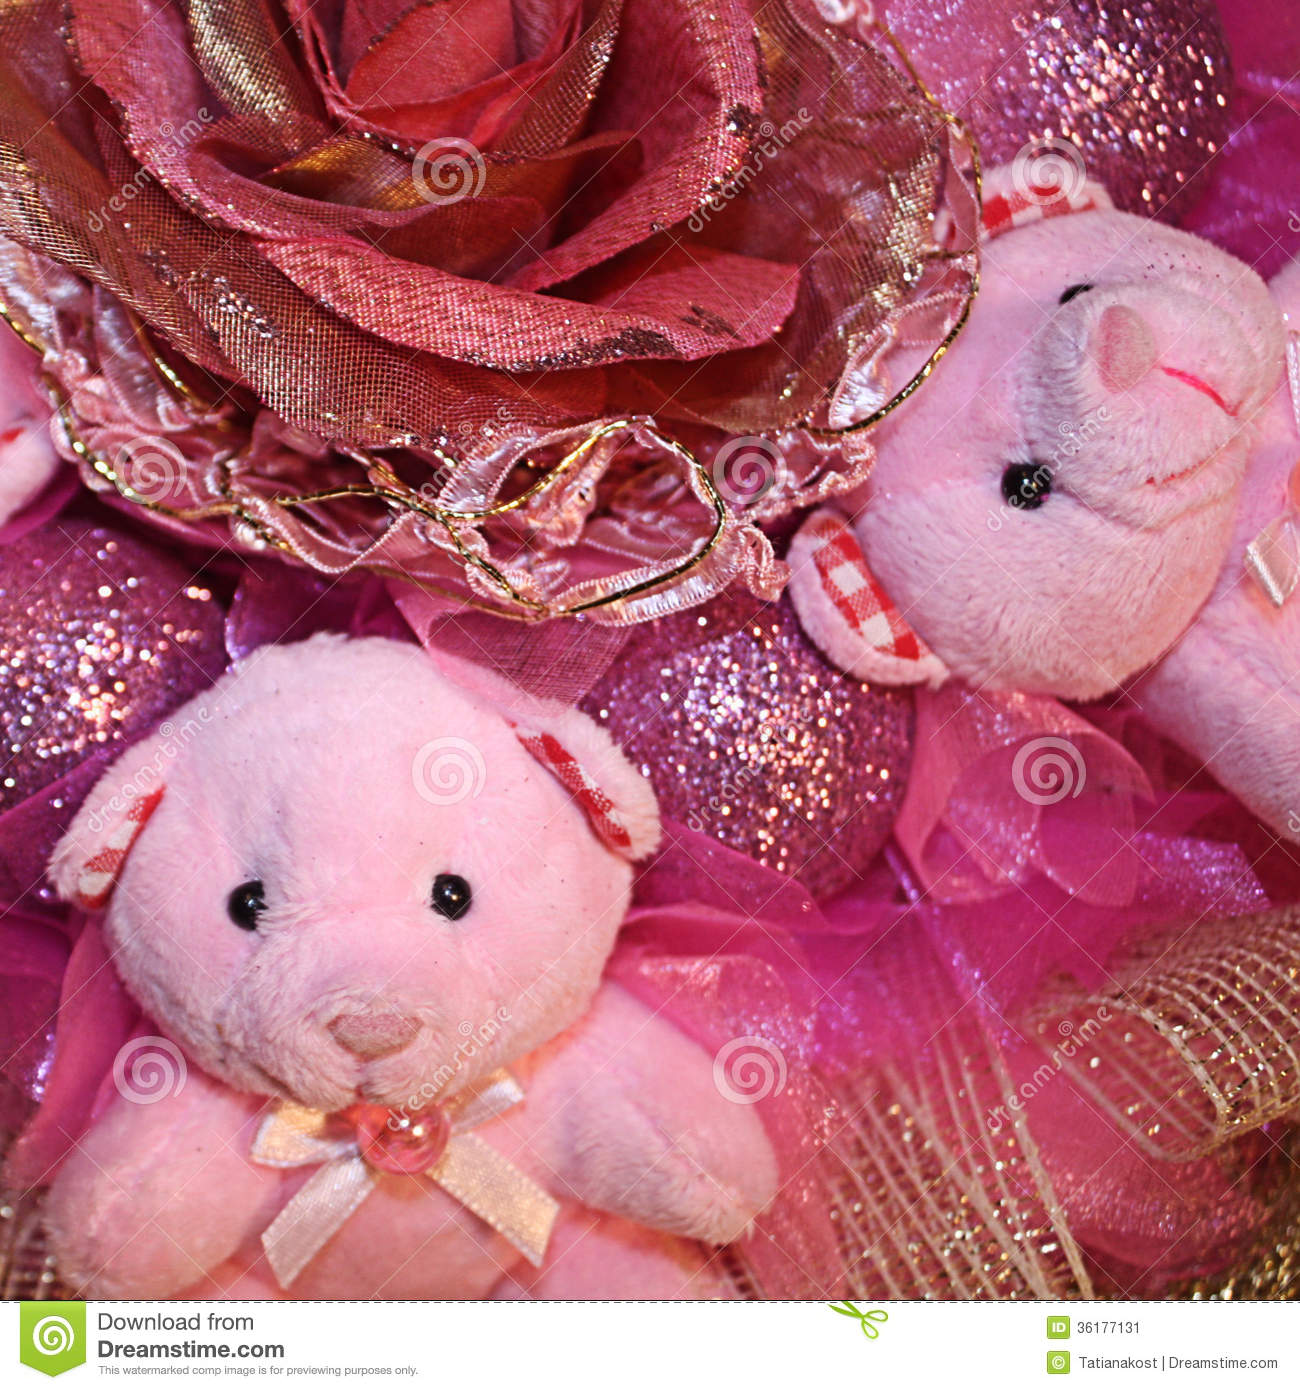 Ursos de peluche cor-de-rosa e flor artificial no composit do Natal